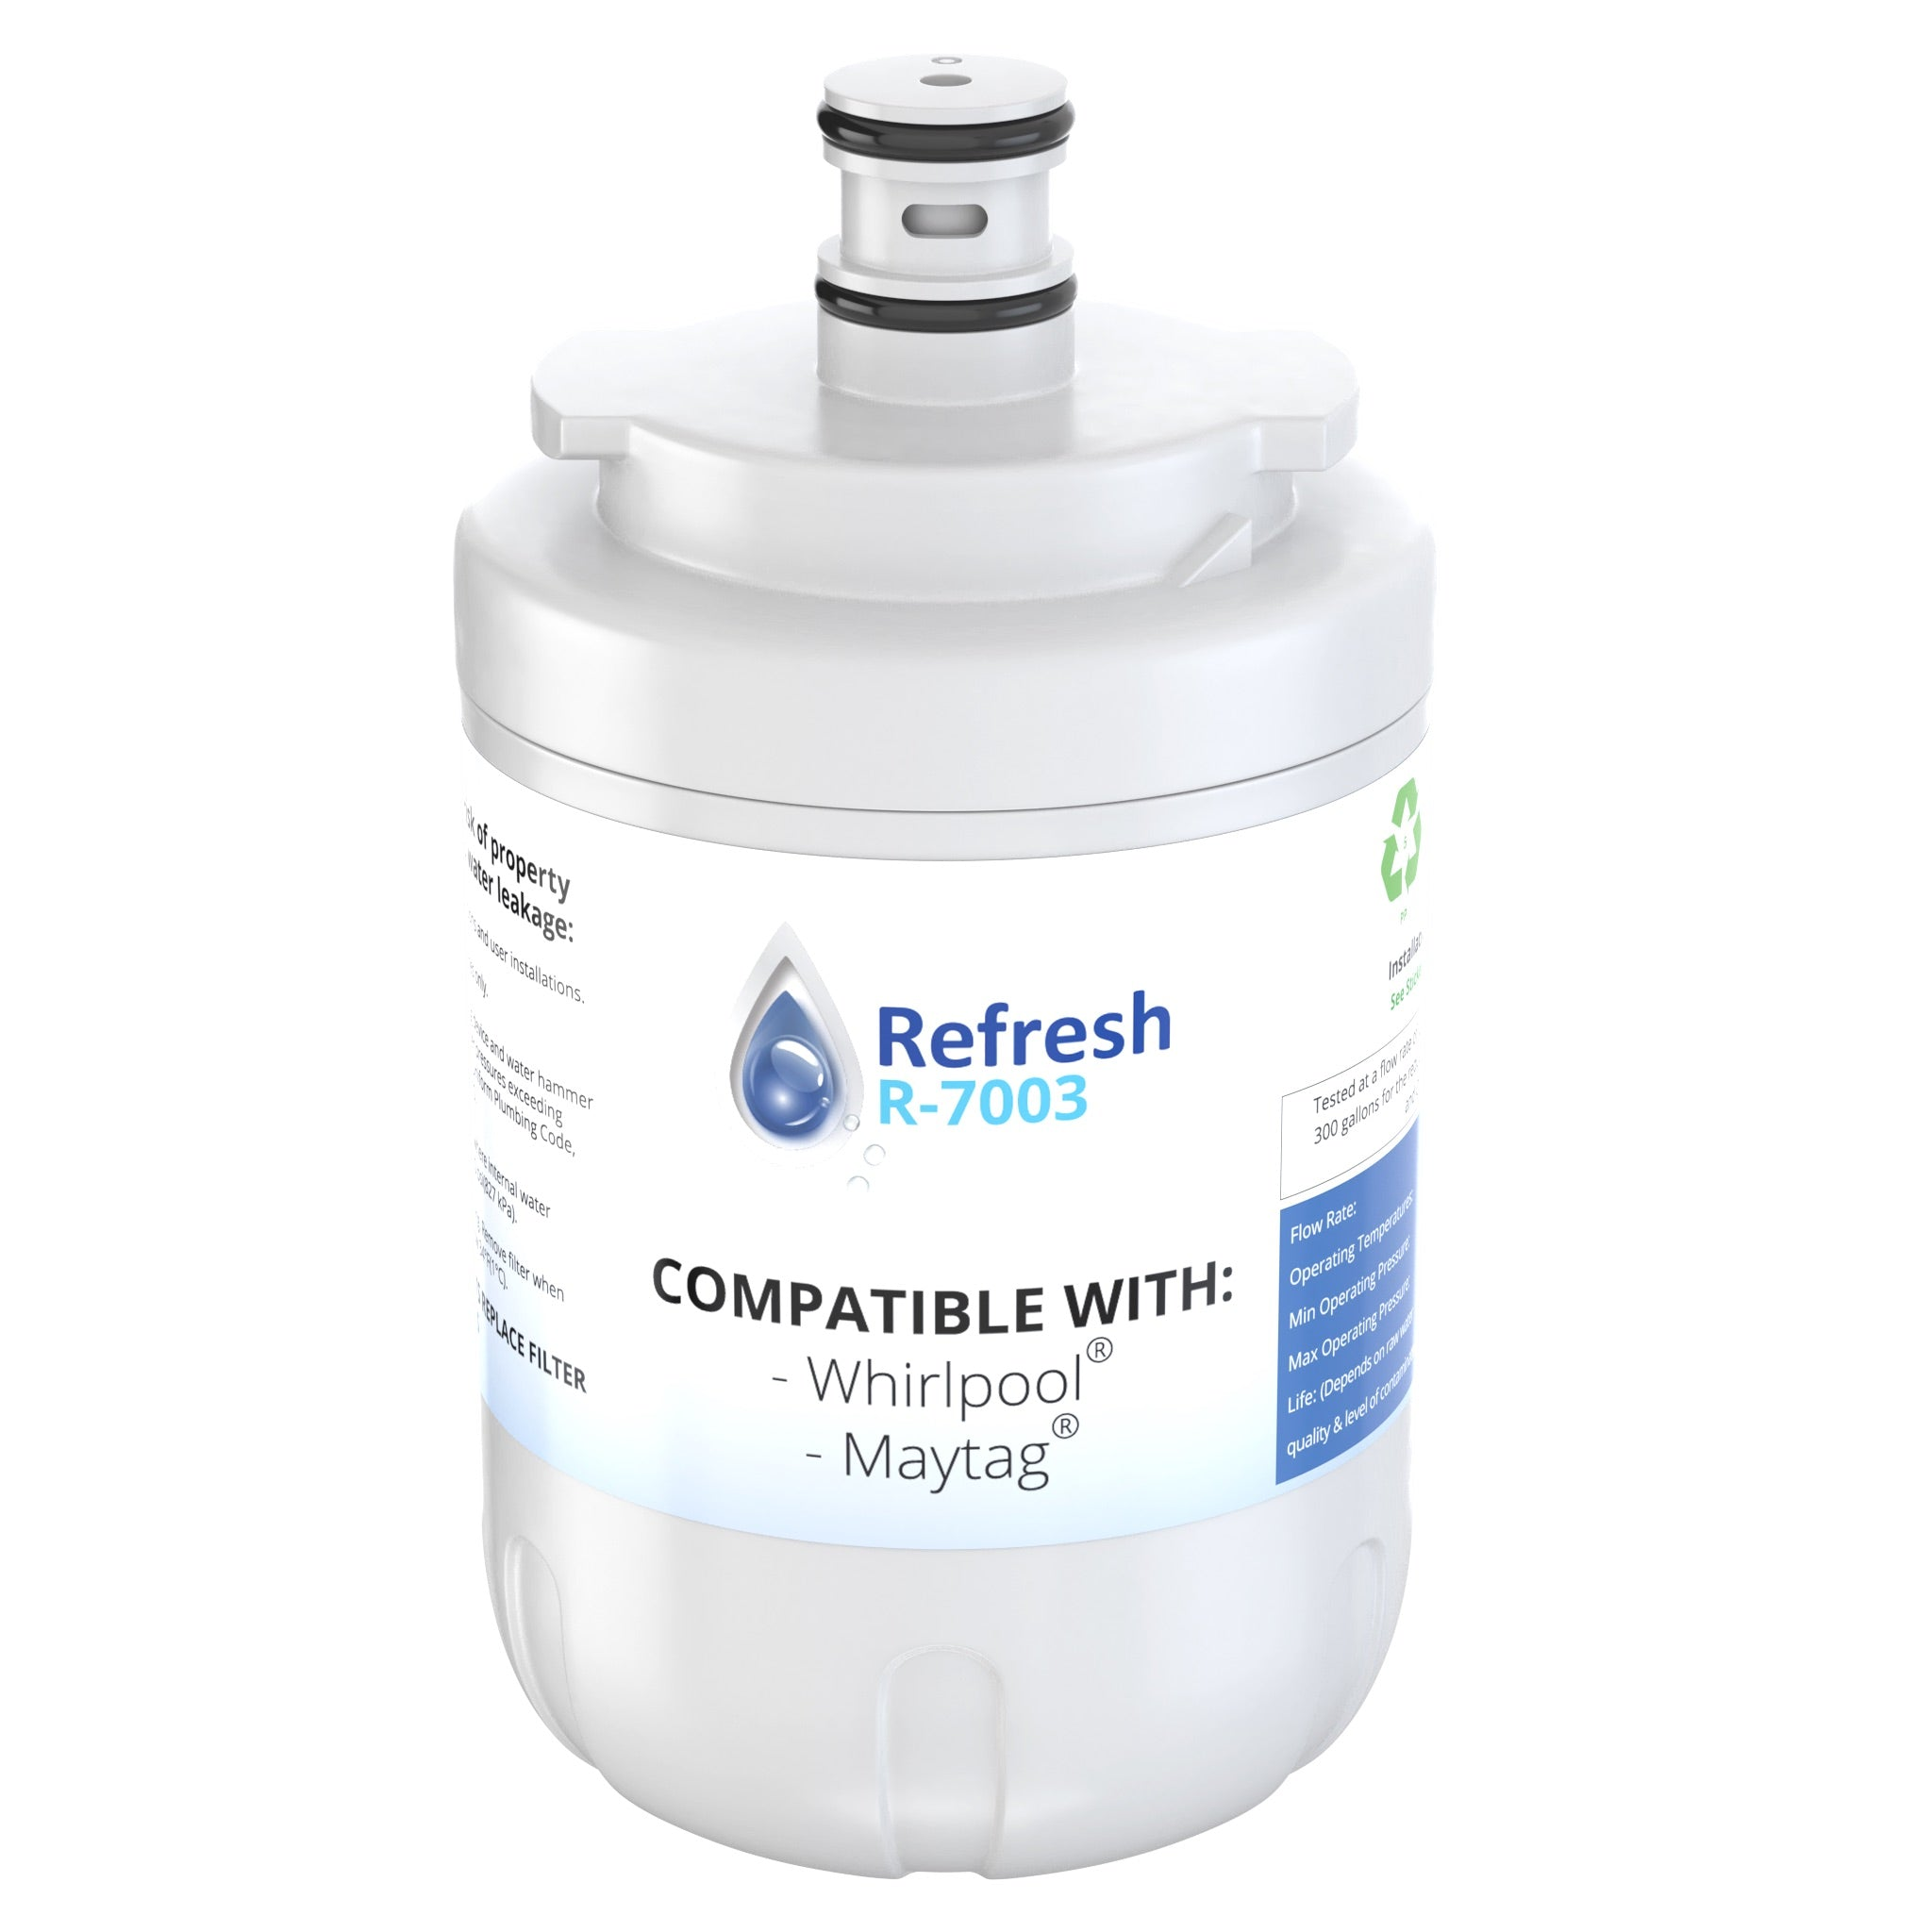 Refresh R-7003 Replacement Refrigerator Water Filter for AQUACREST UKF7003 and Maytag UKF7003, UKF7002AXX, WF288 and Whirlpool EDR7D1 and more!